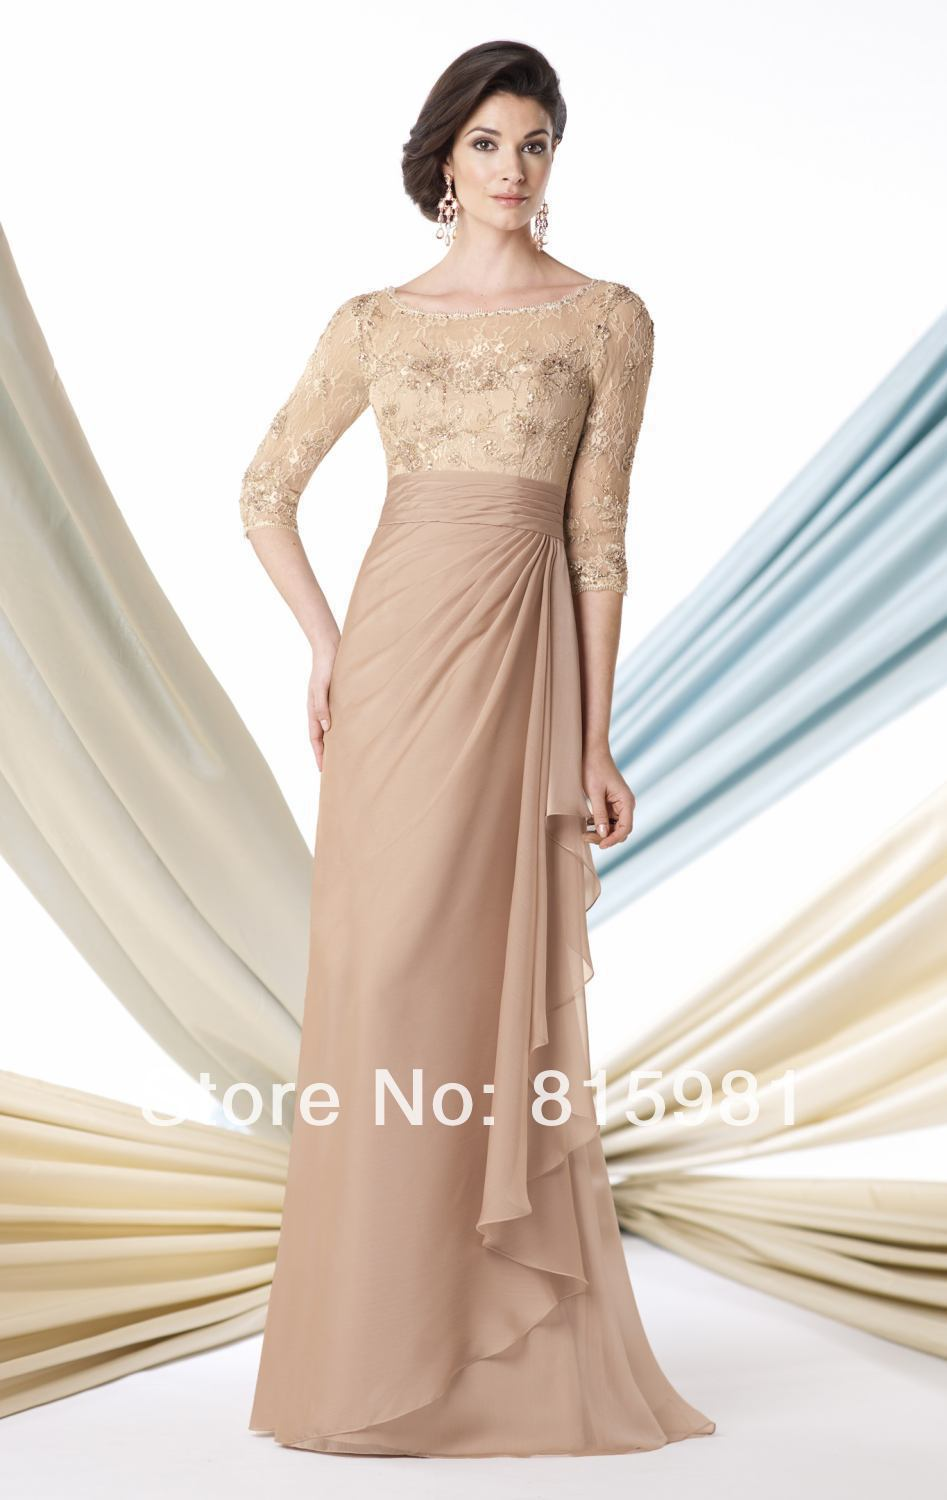 Light Taupe/ Champagne Gold Chiffon Laced Sleeved Evening Formal ...